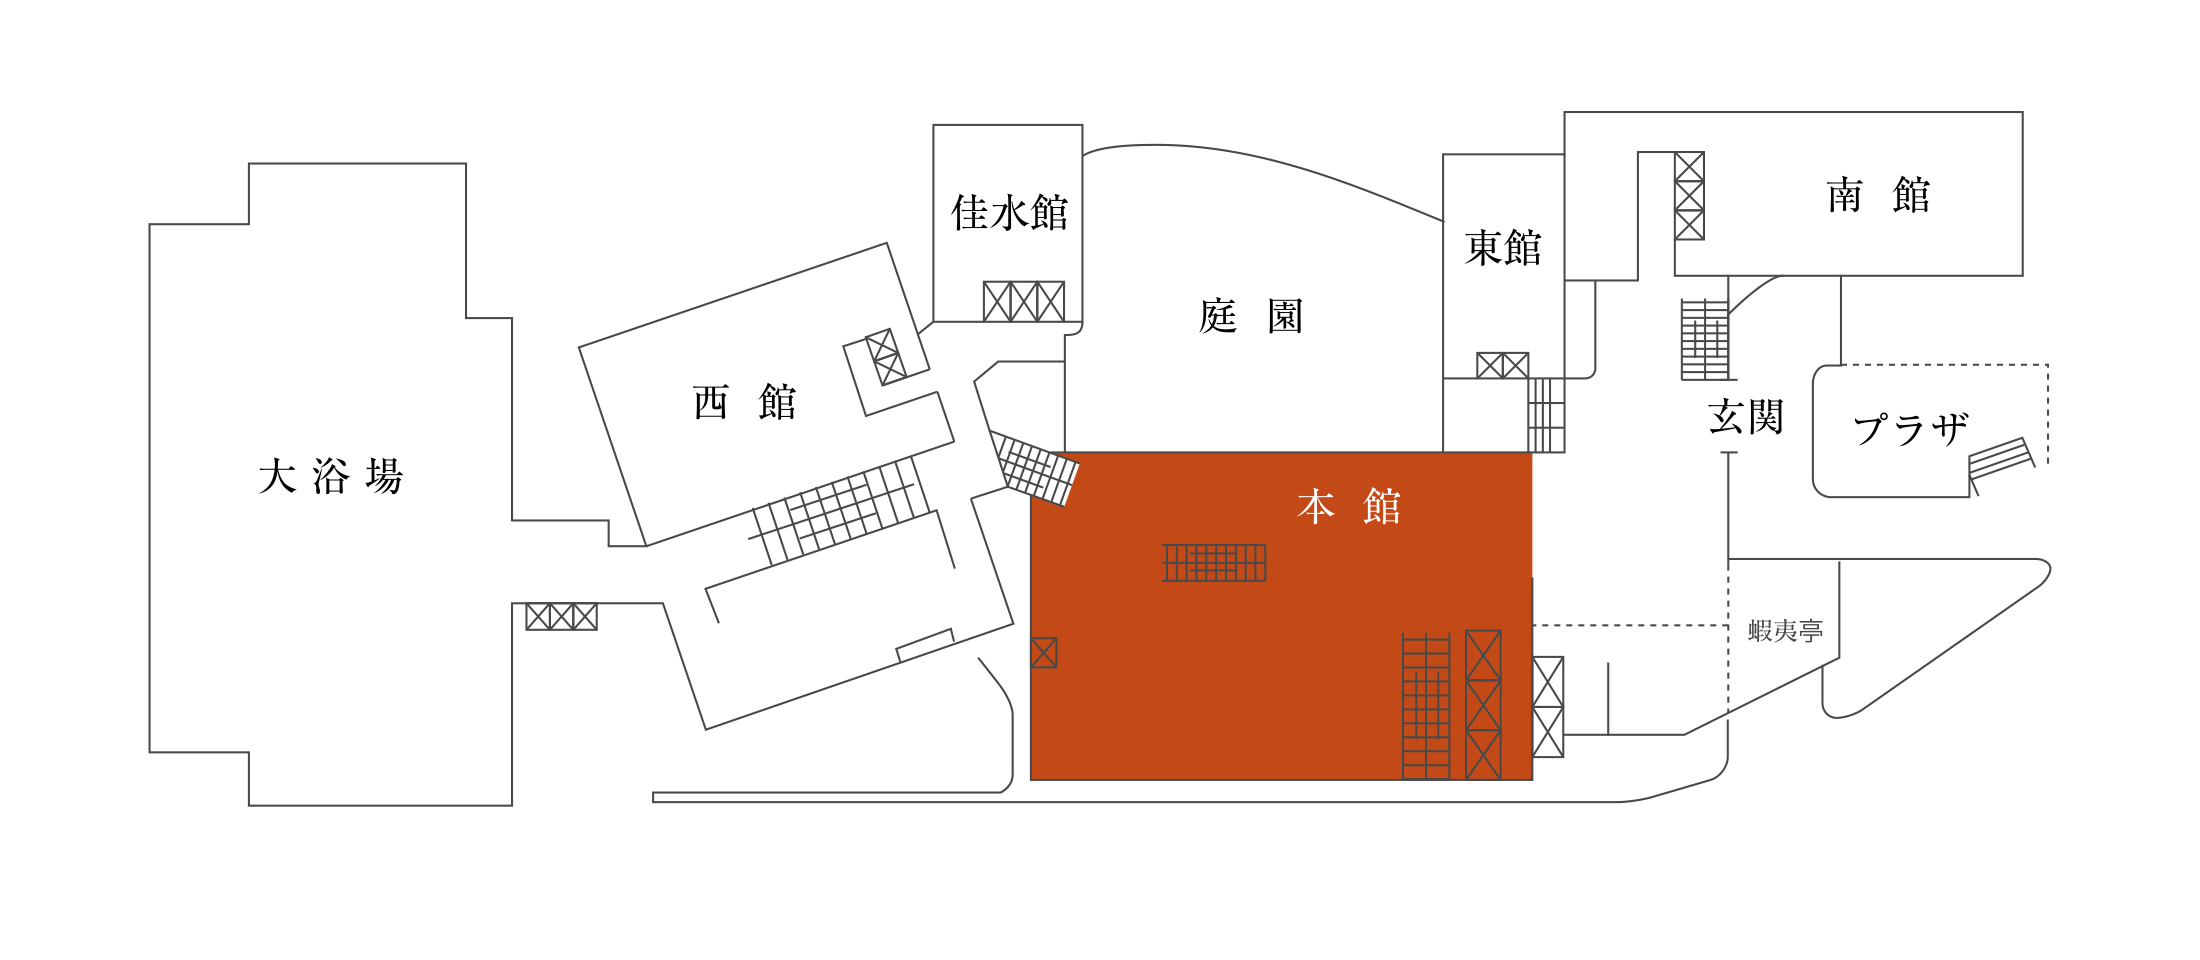 Main building hall drawing